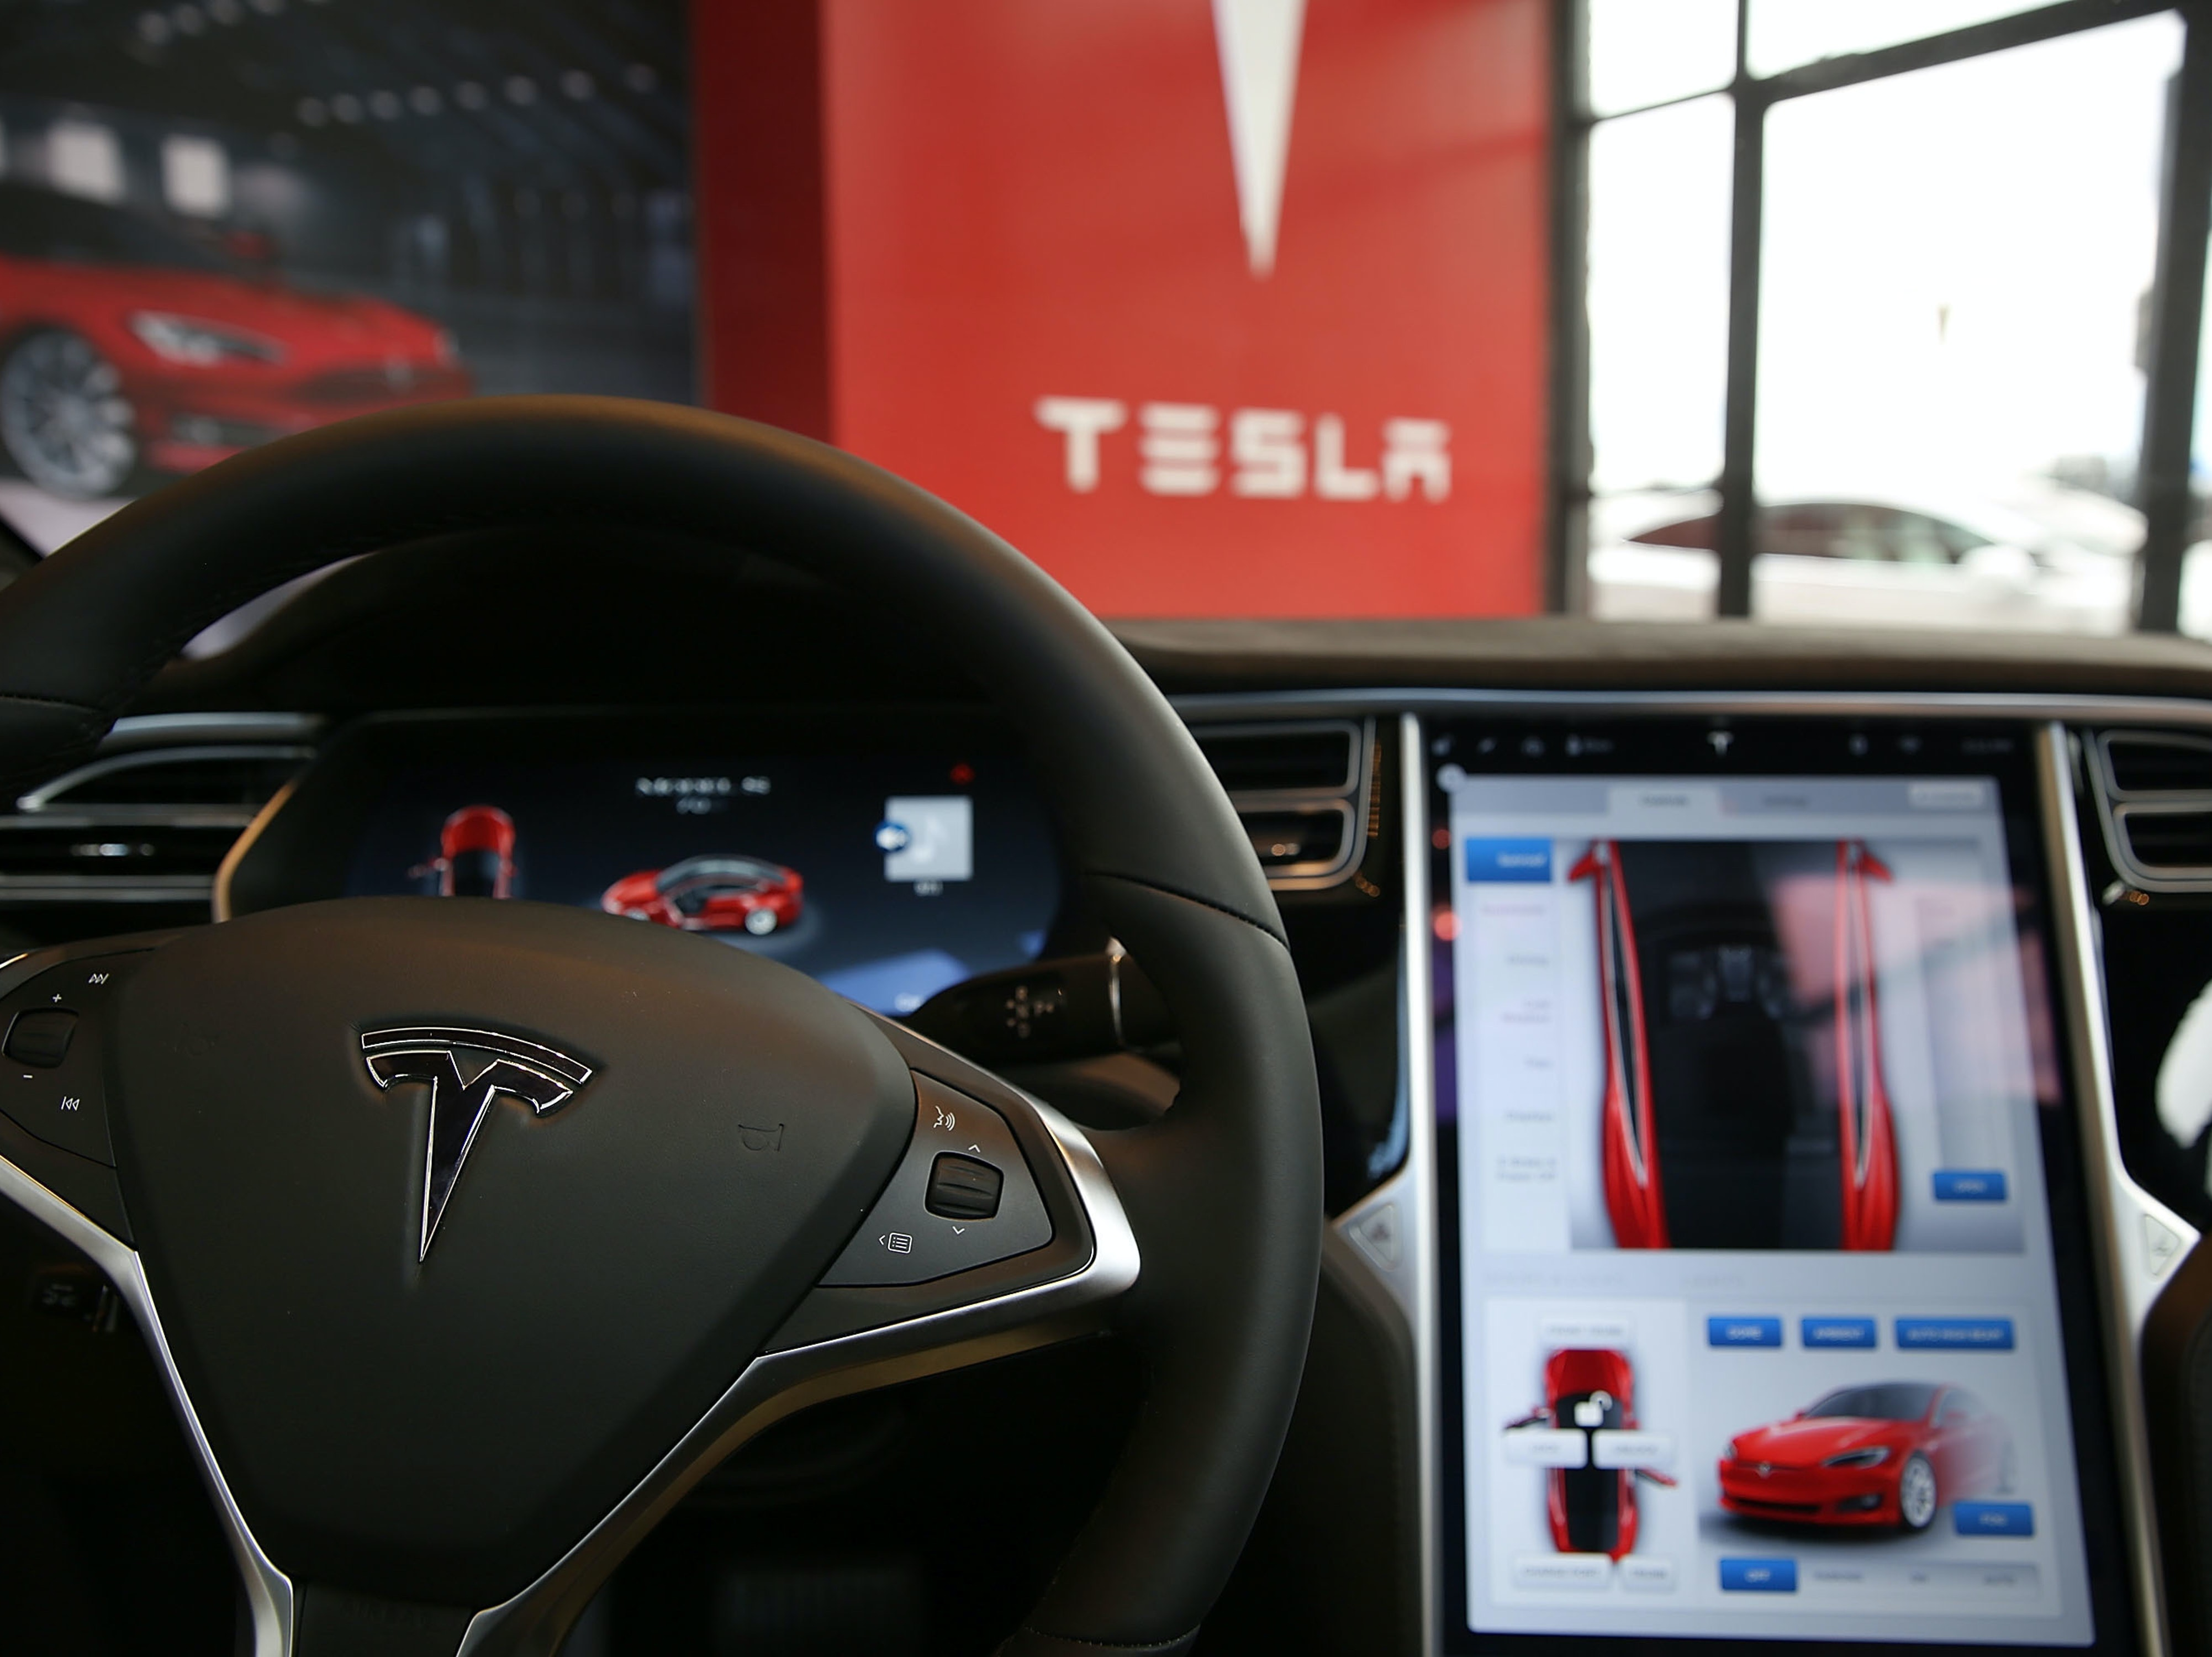 The inside of a Tesla vehicle is viewed as it sits parked in a new Tesla showroom and service center in Red Hook, Brooklyn on July 5, 2016 in New York City.